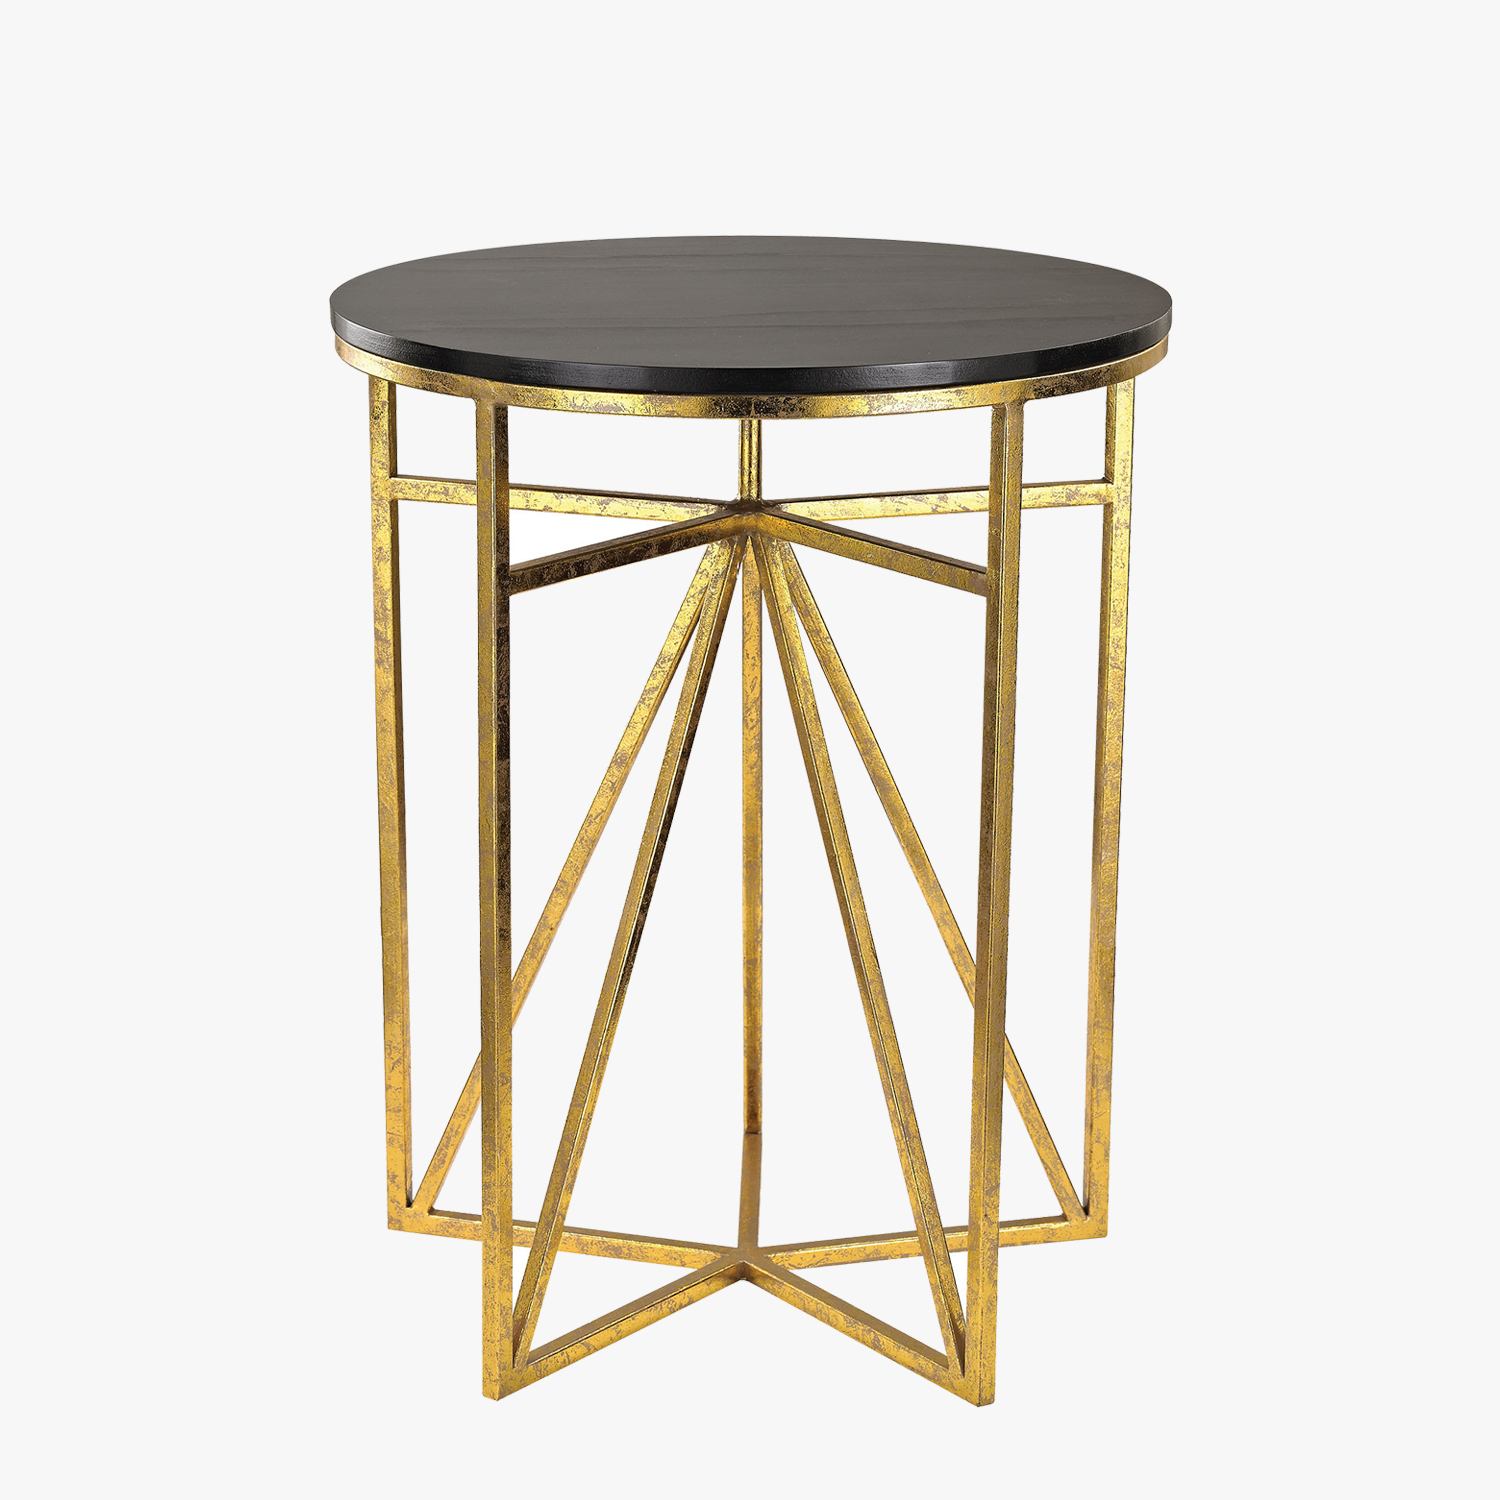 etoile antique gold accent table dear keaton bedroom end lamps wine stoppers target tiffany pond lily lamp dog grooming outdoor shade umbrella baby changing pad small narrow